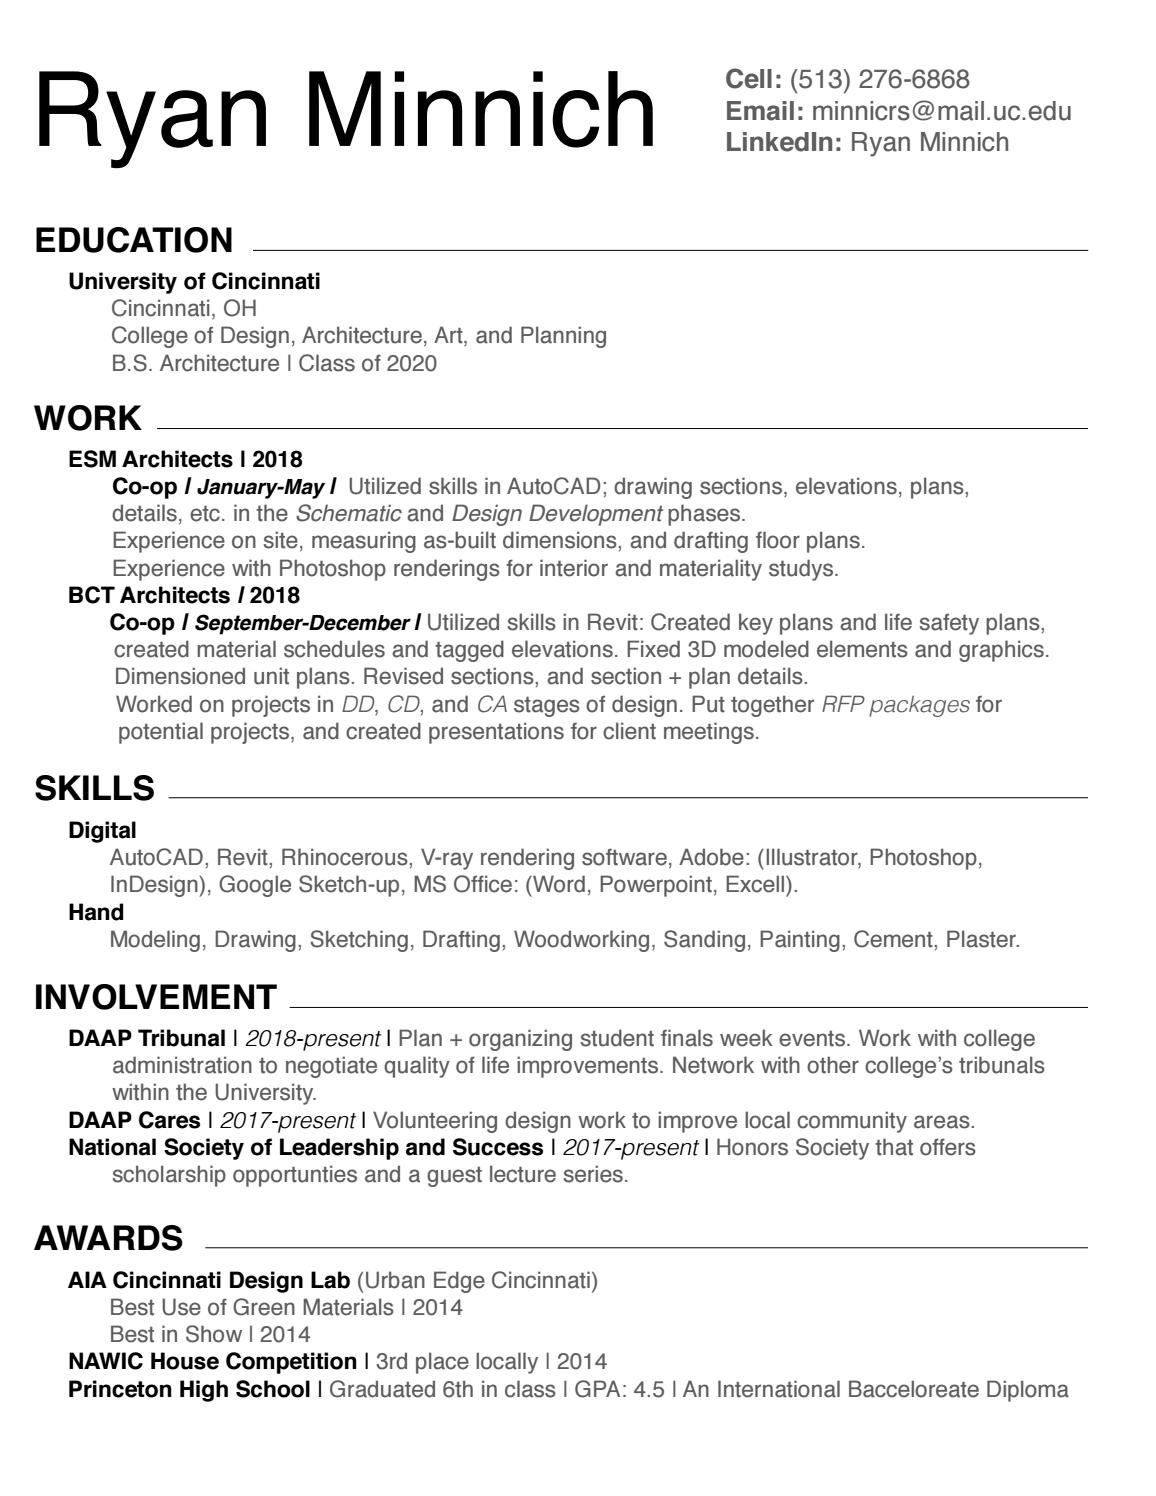 Ryan Minnich_Resume by Ryan Minnich - issuu